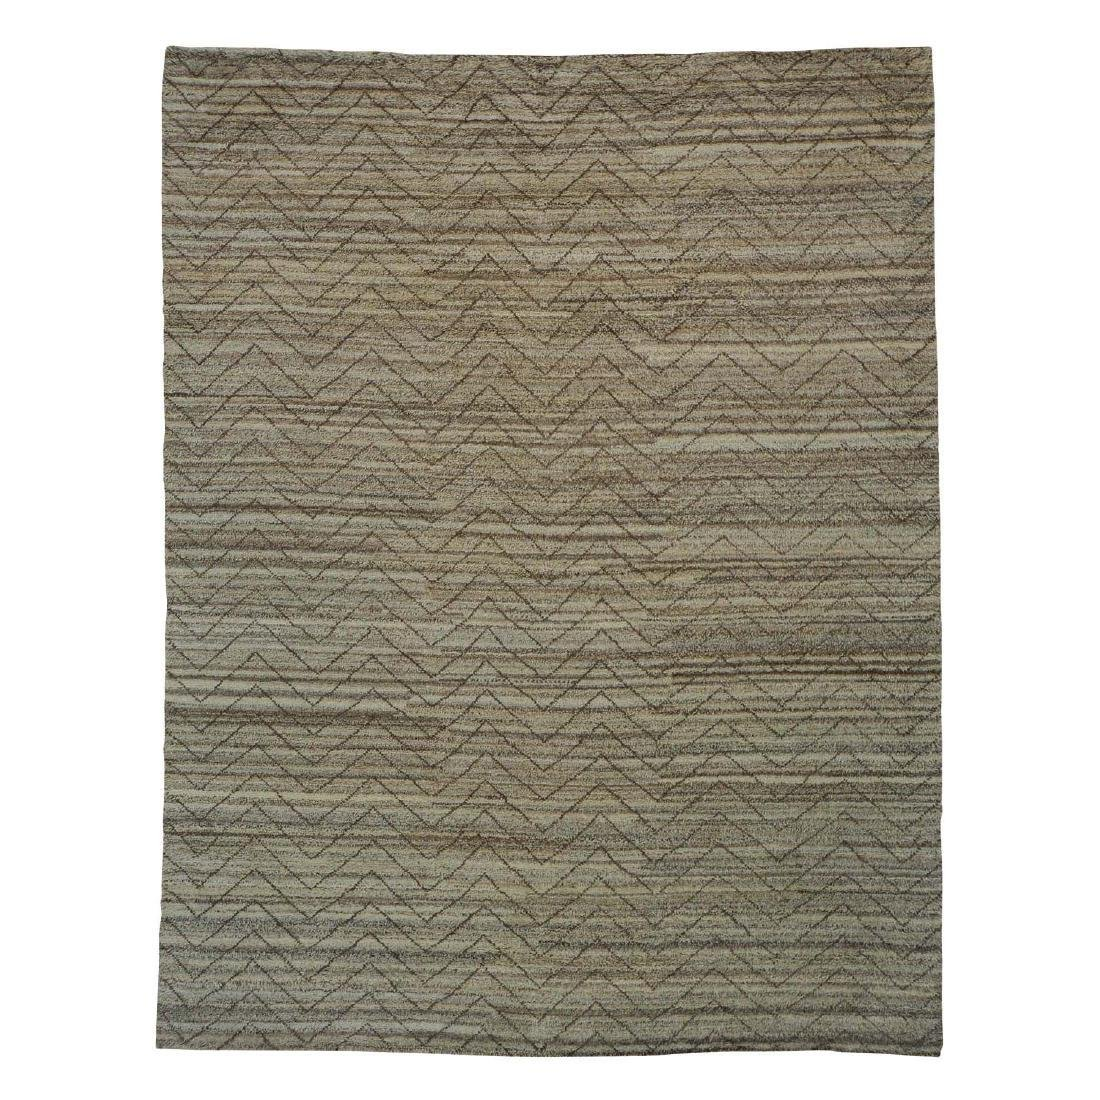 Wool Moroccan Berber Hand Knotted Rug 9.2x11.10